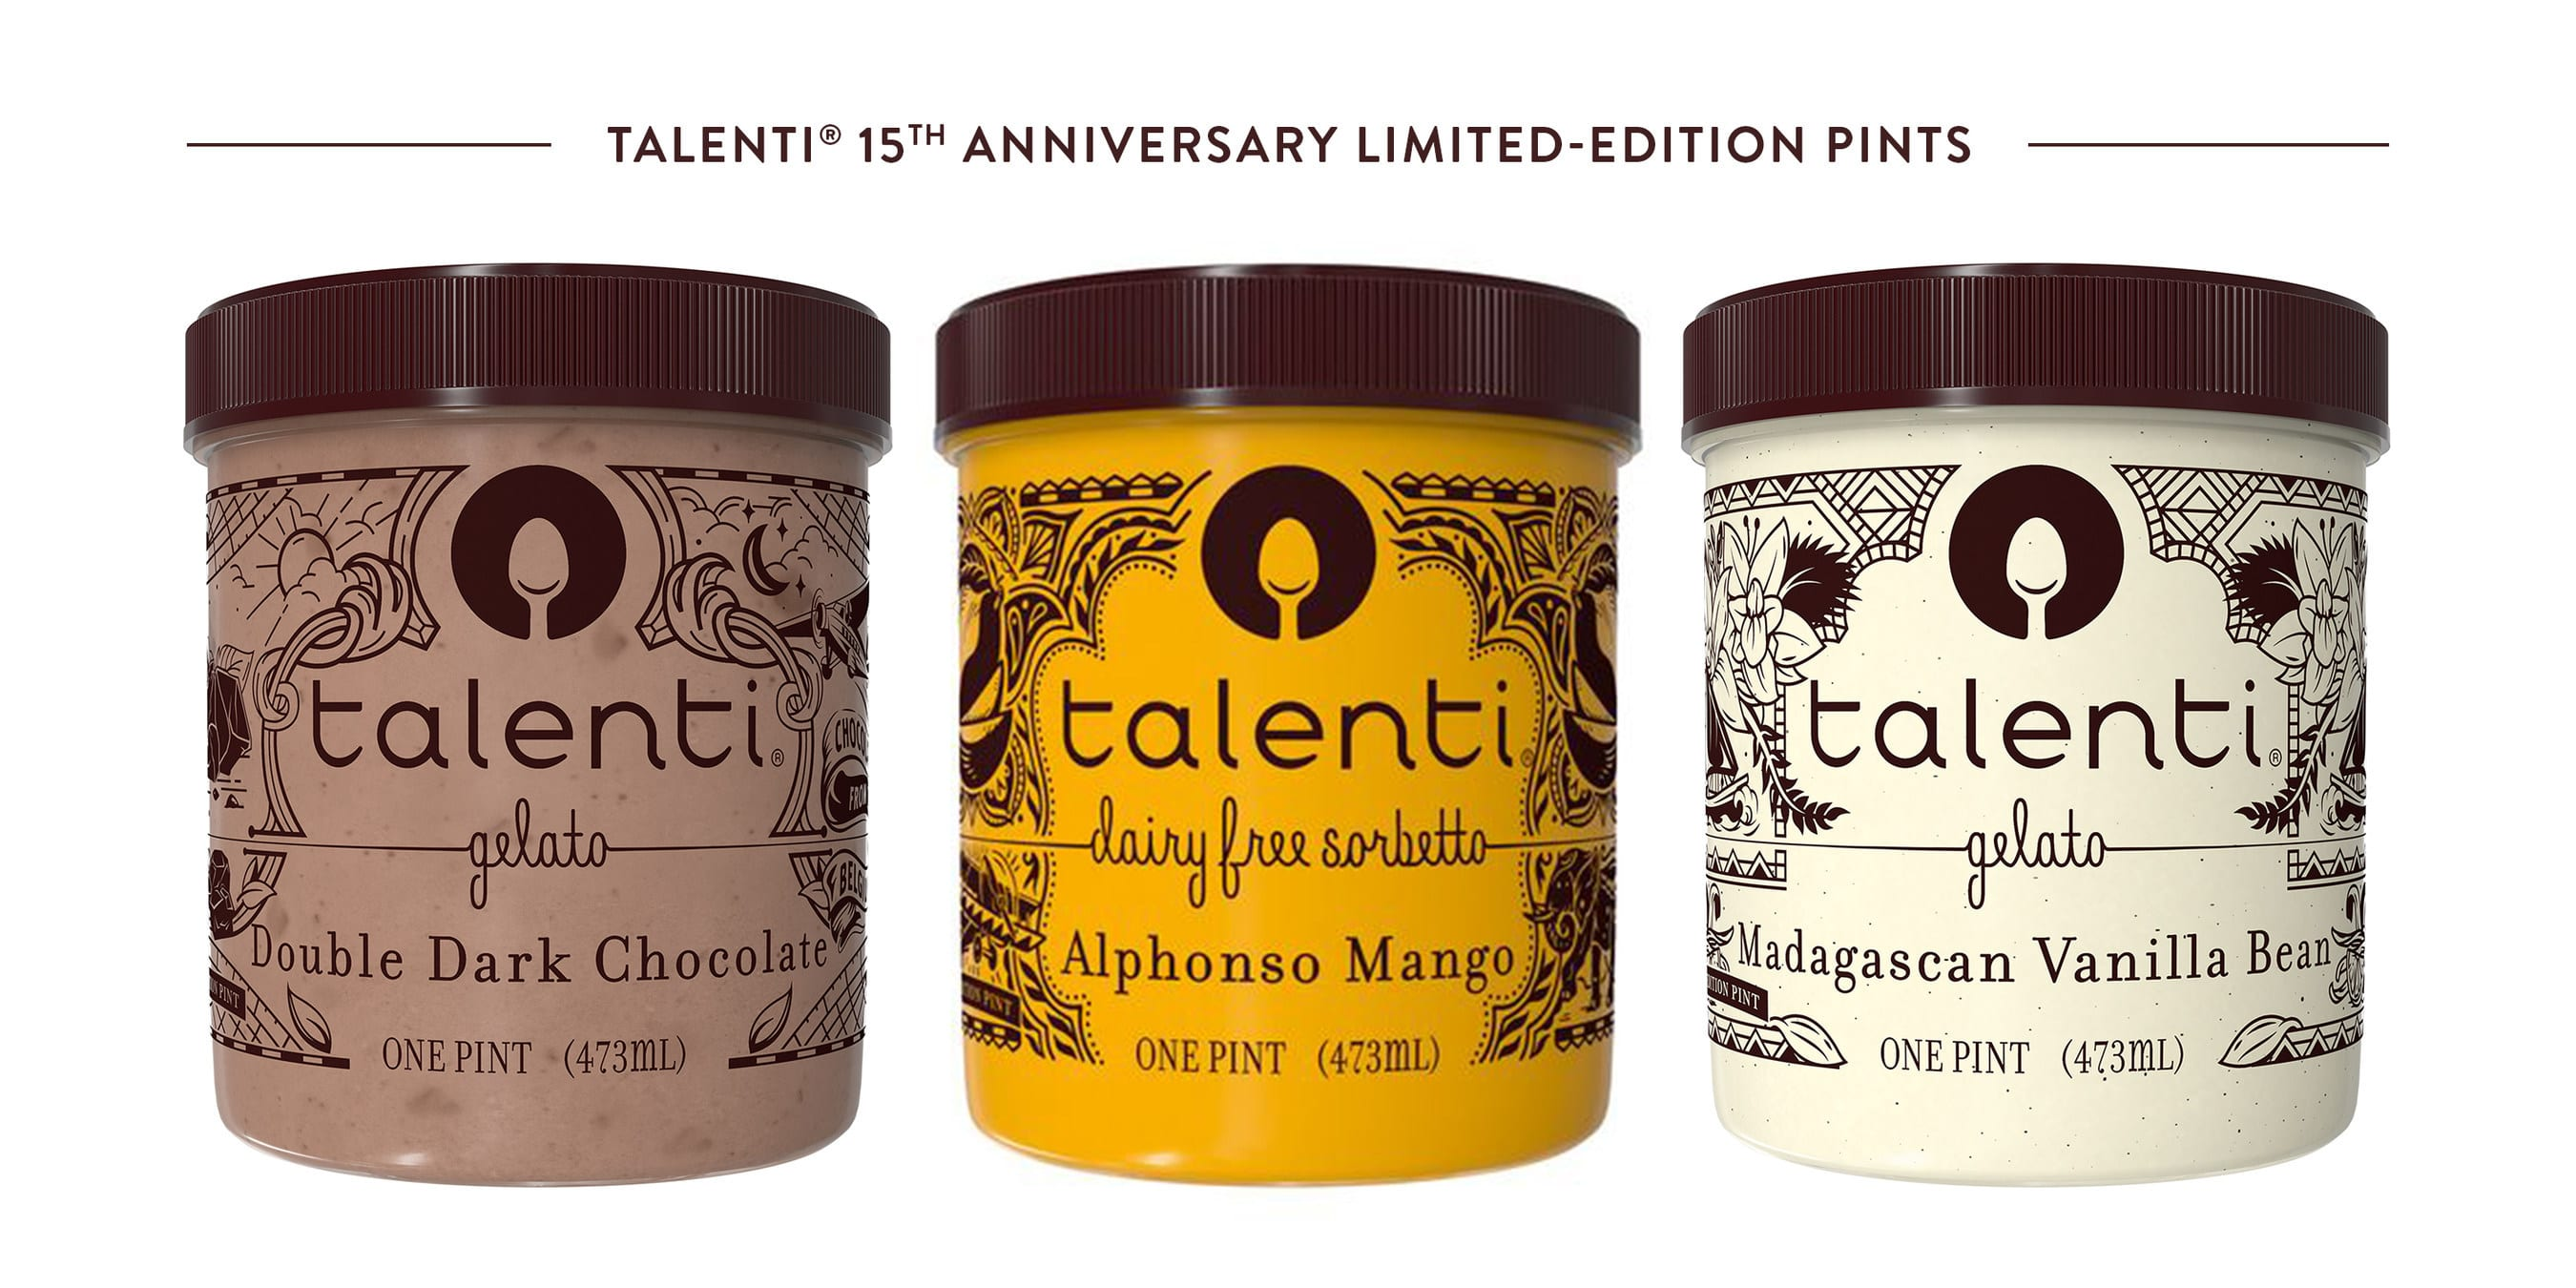 Talenti Gelato & Sorbetto Celebrates 15th Anniversary with Limited-Edition Pints